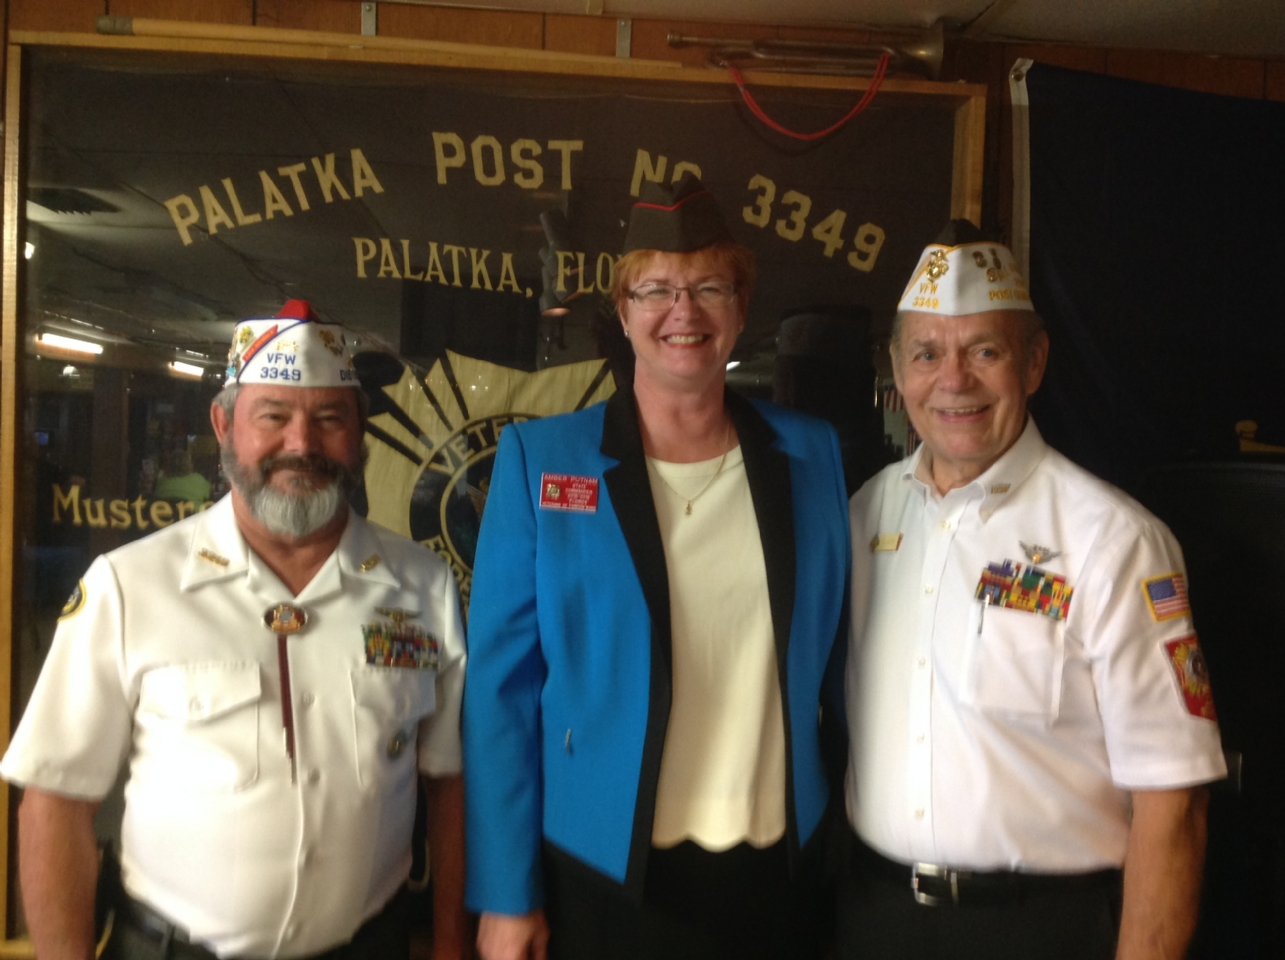 Post Commander Bill Thompson, Past State Commander Amber Putnam, & Post QM Charlie Wellborn